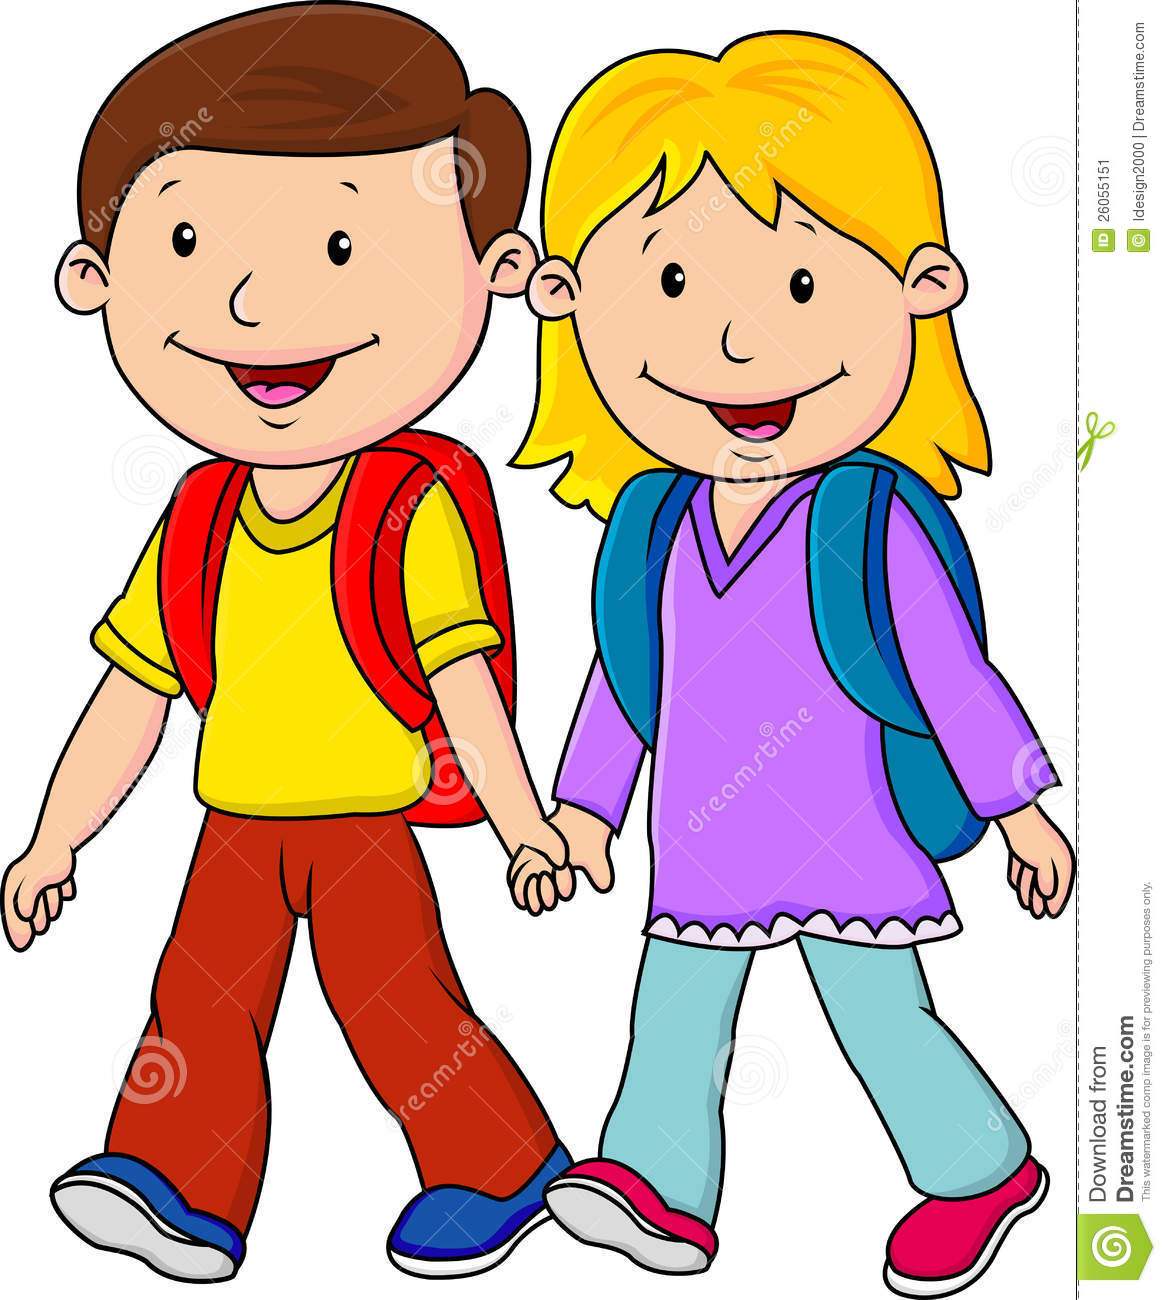 School clipart with kids download Kids and school clipart - ClipartFest download